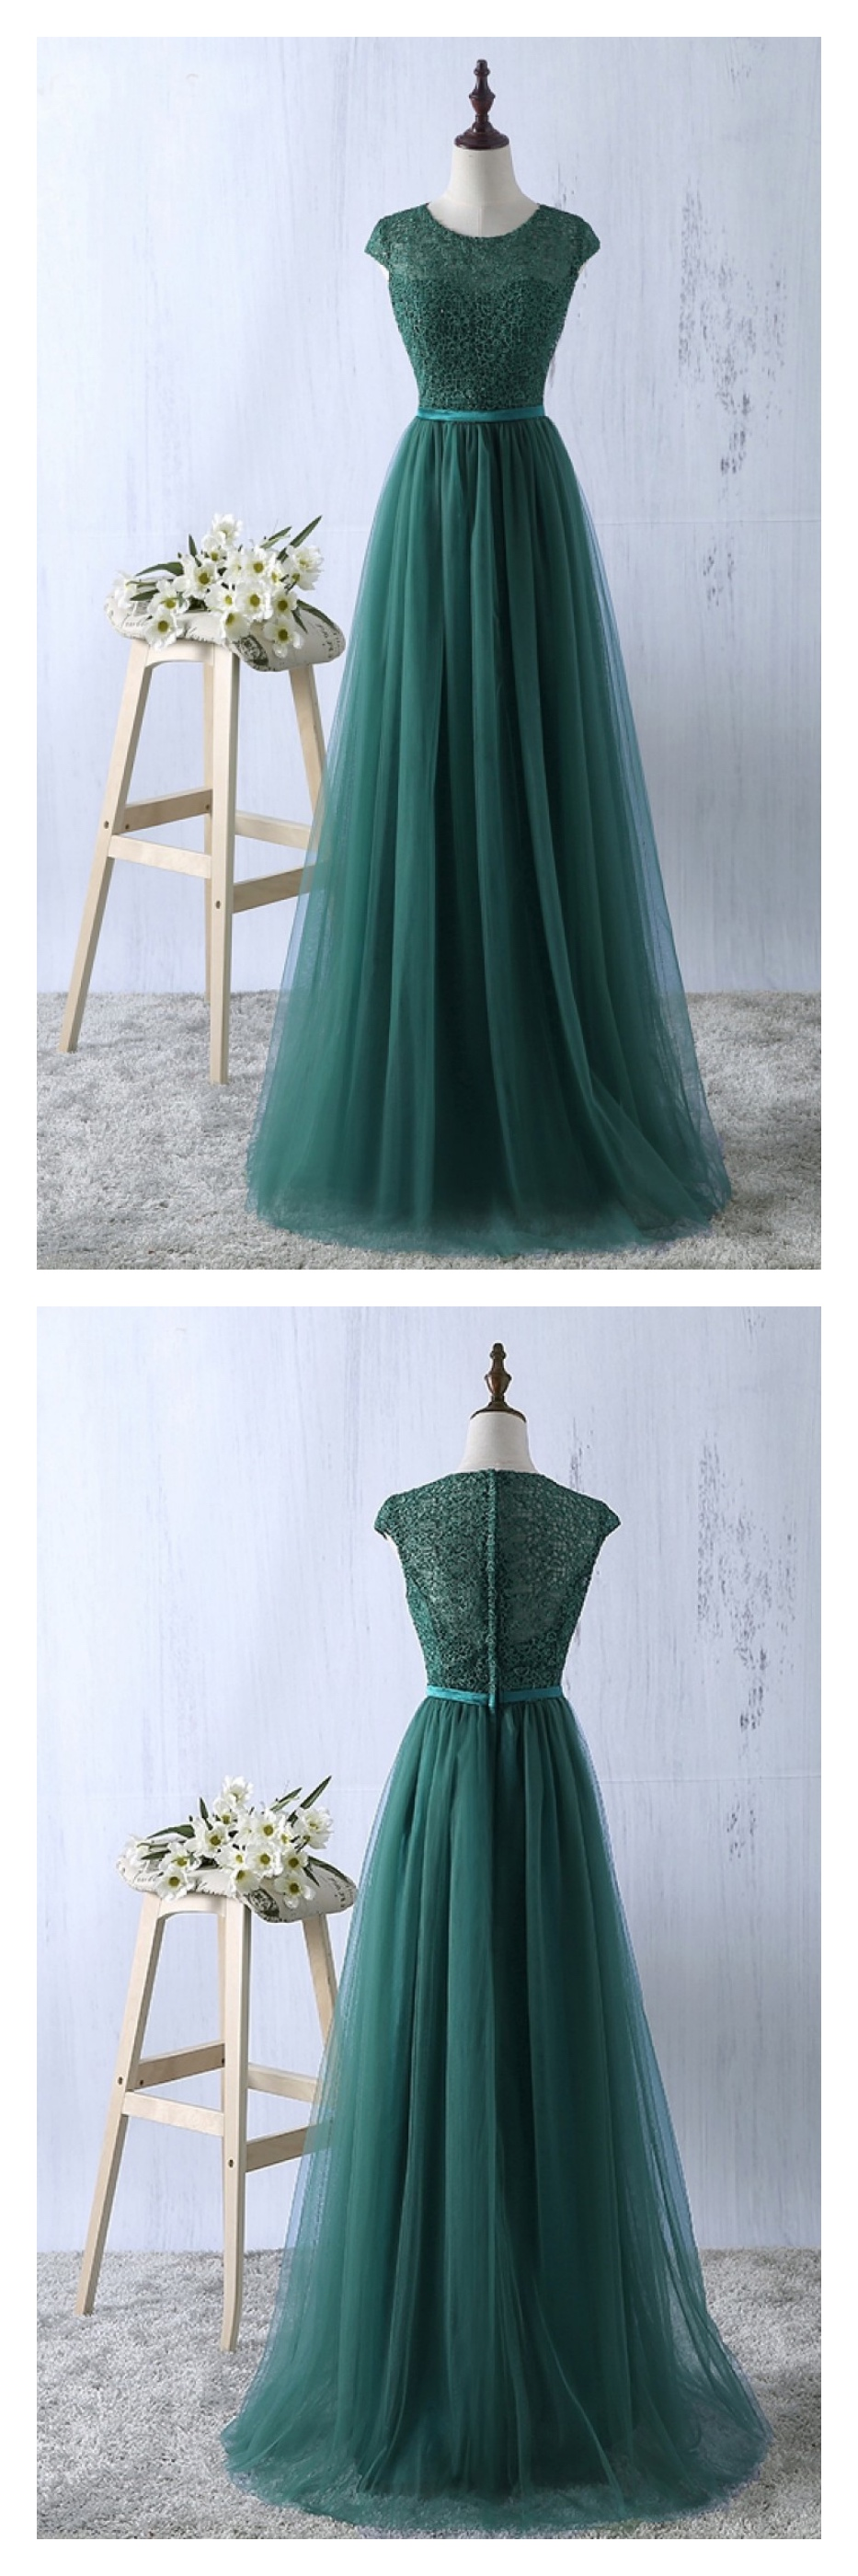 Aline green round neck cap sleeves long prom dressed